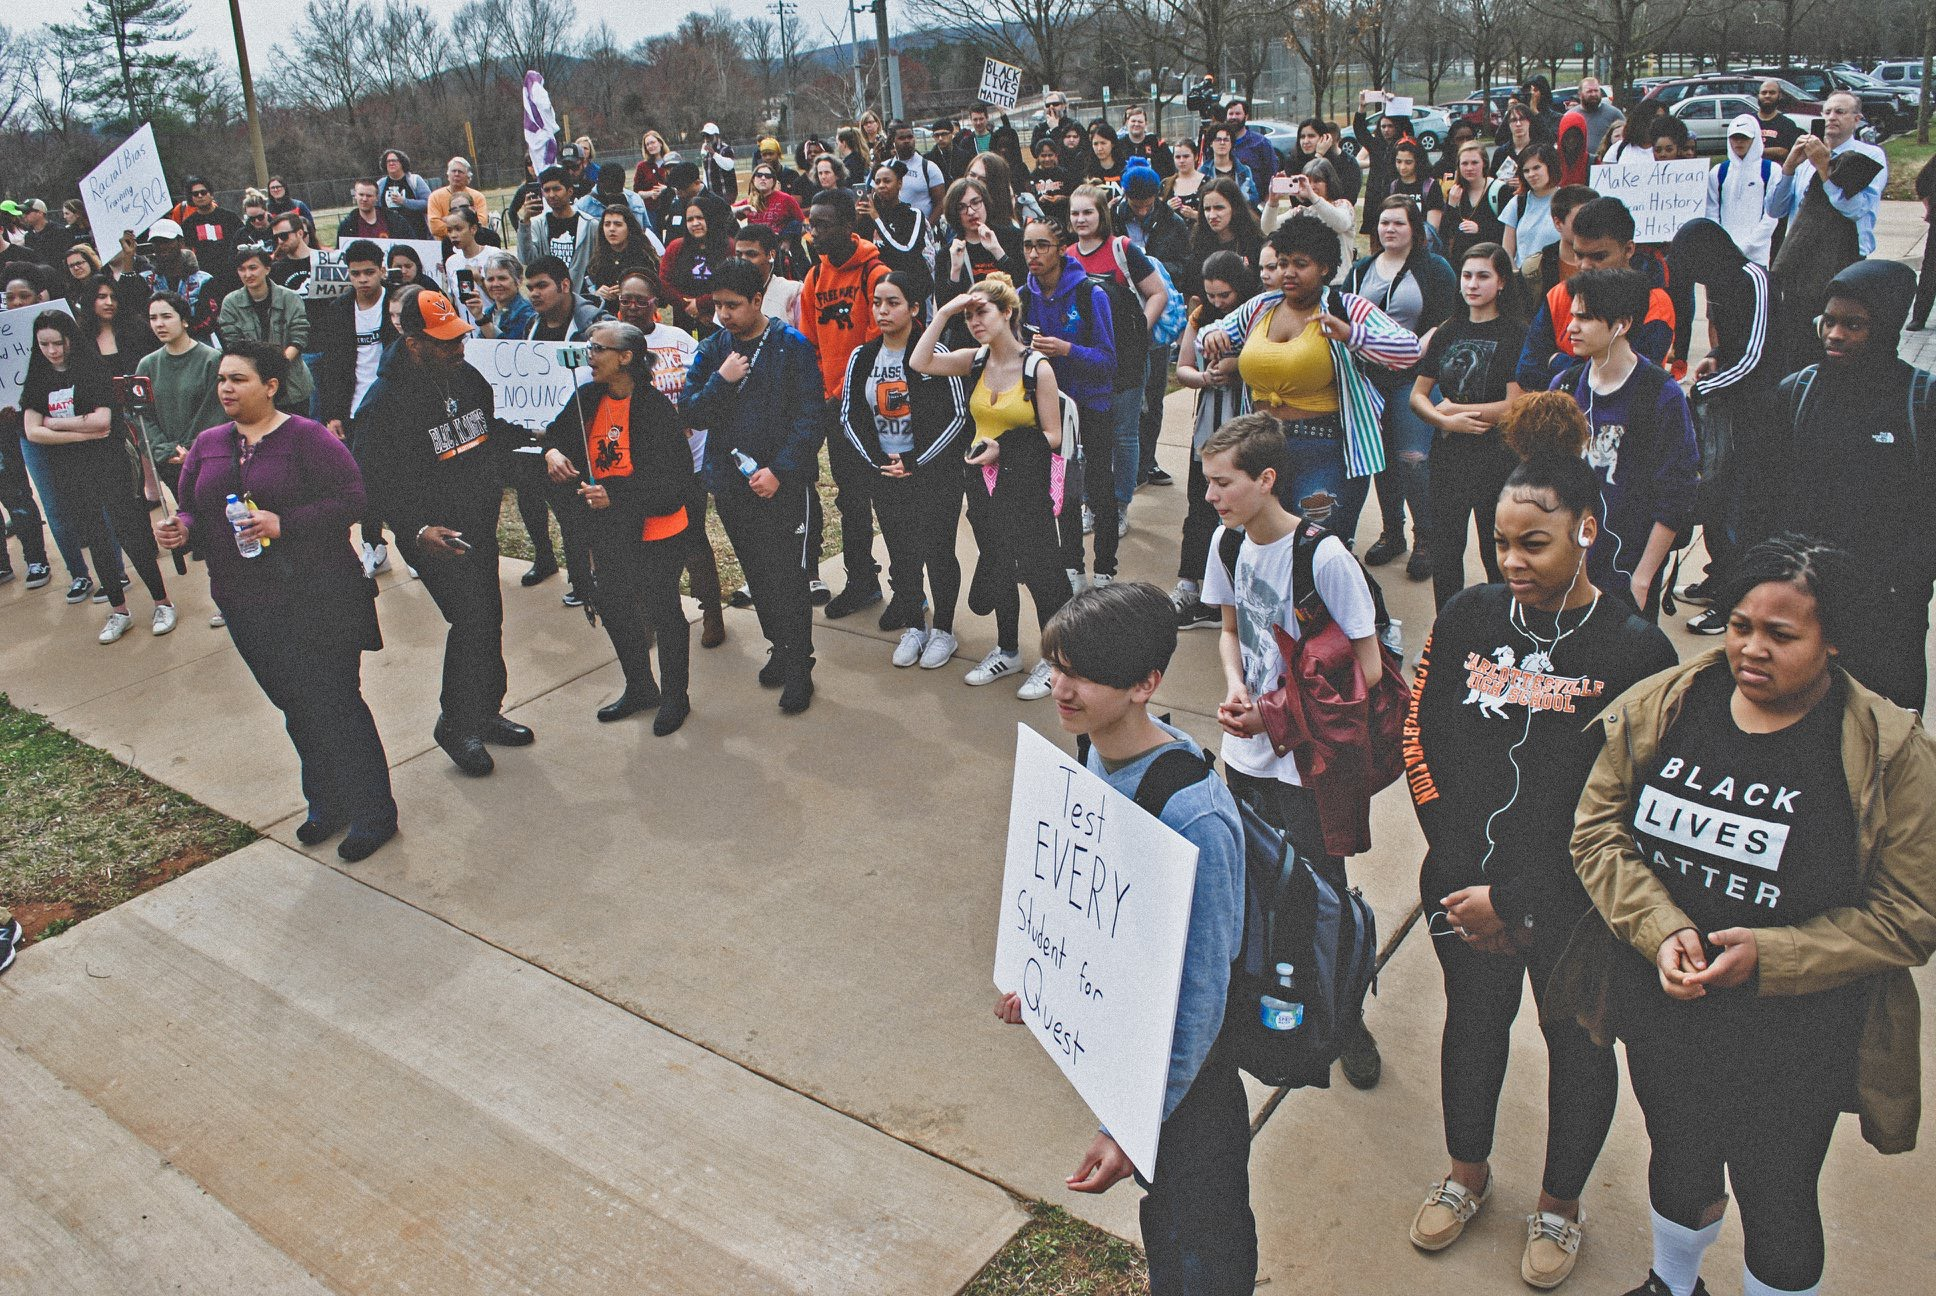 Hundreds of students gather in McIntire park for the BSU's reading of the 10 demands, 2019. (Photo by Locs Image Photography)